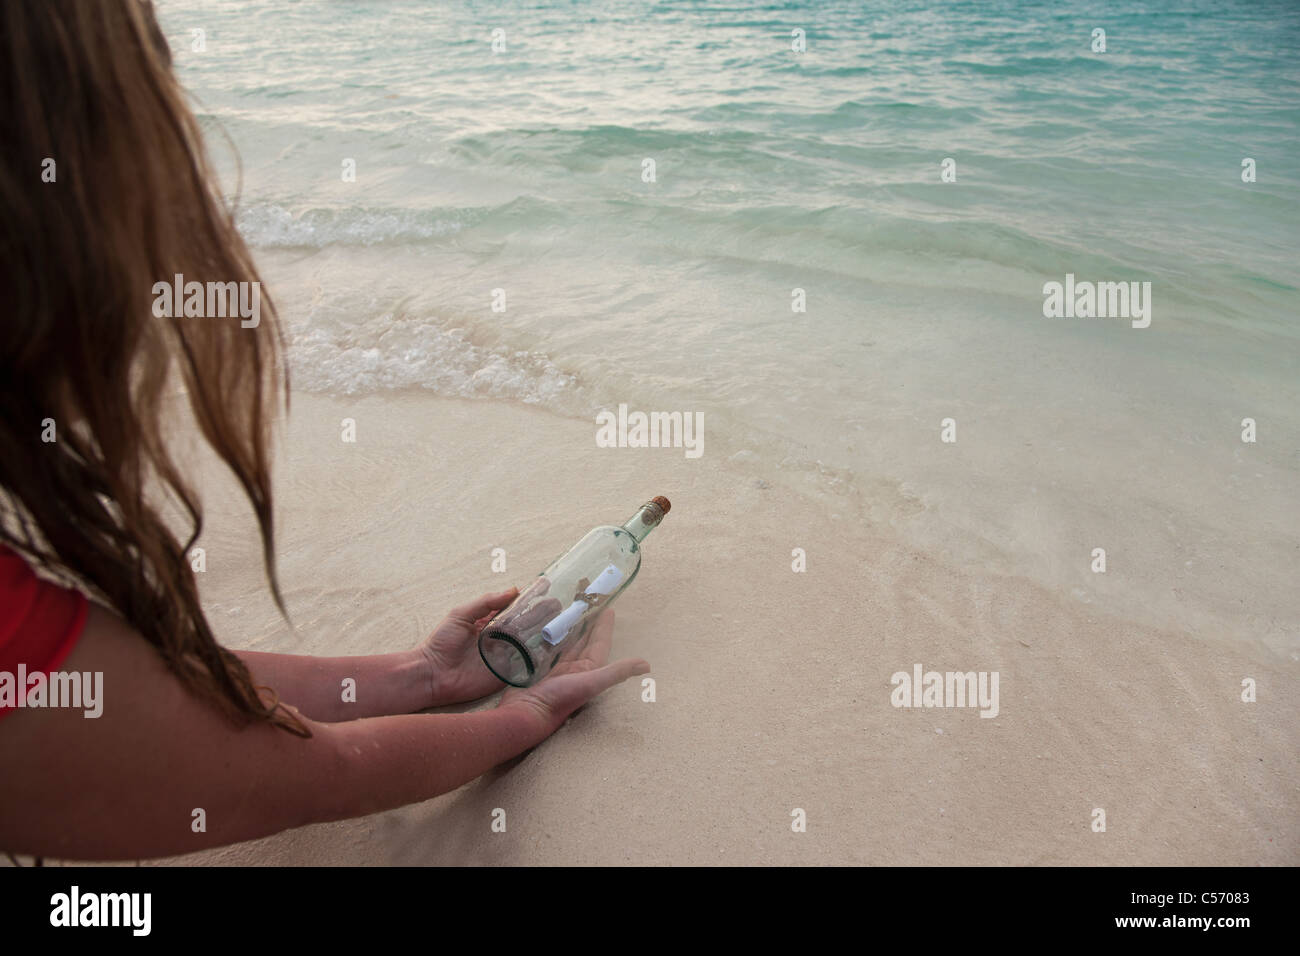 Woman with message in a bottle at beach - Stock Image